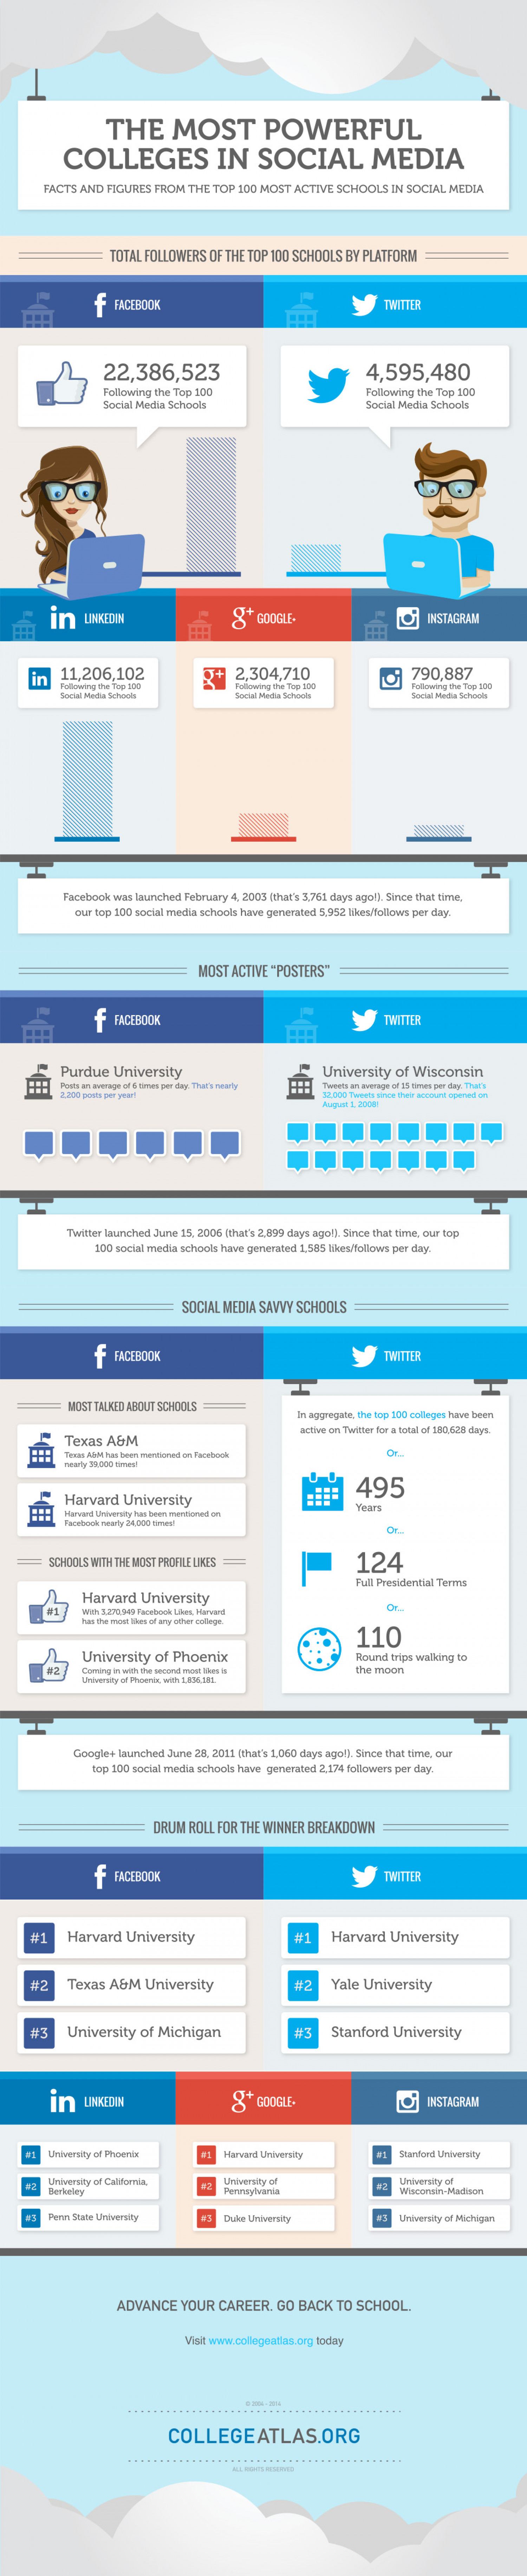 The Most Powerful Colleges in Social Media Infographic